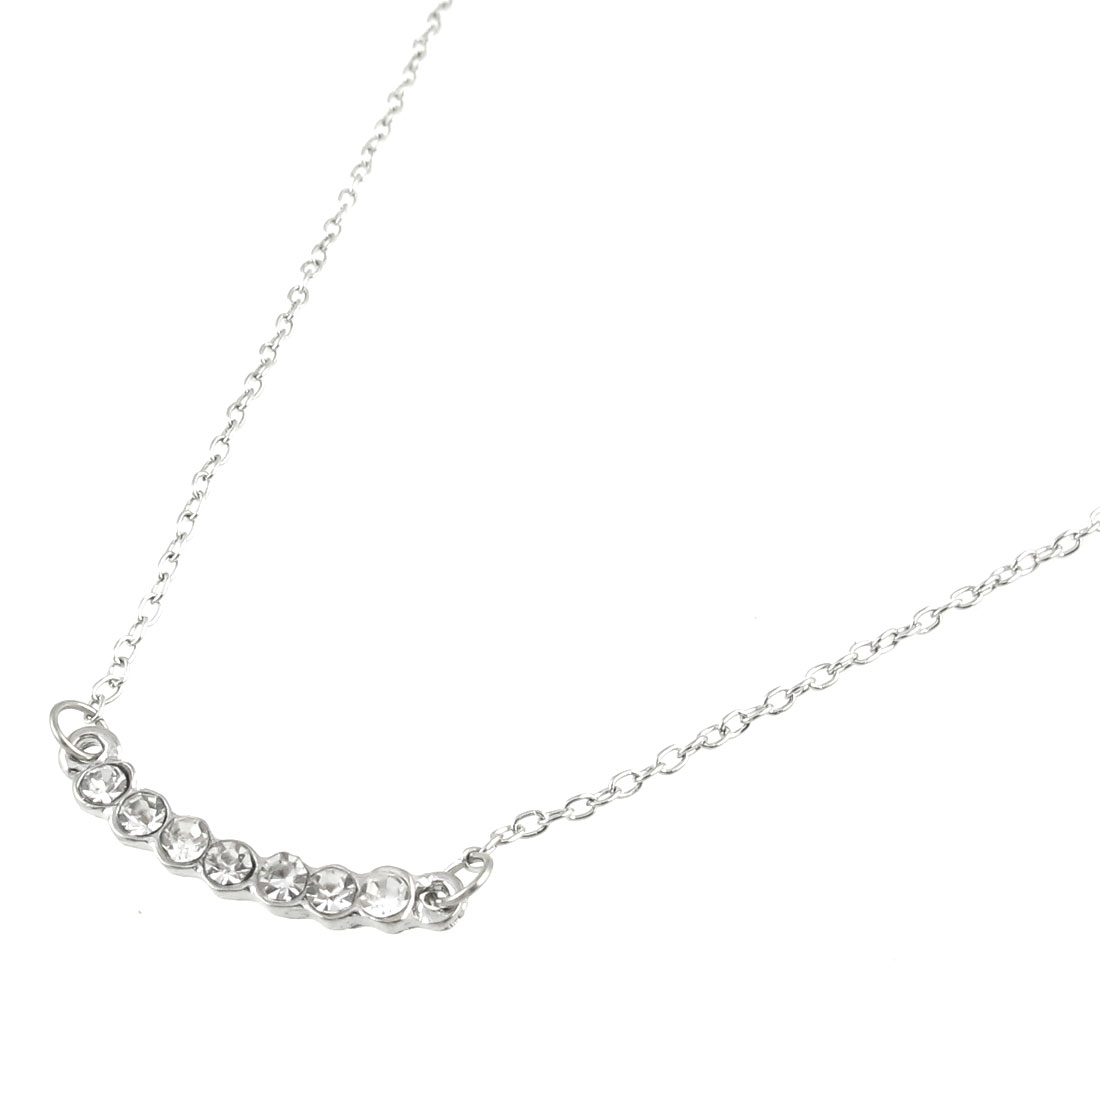 Rhinestone Inlaid Glamshine Pattern Pendant Silver Tone Chain Necklace for Lady